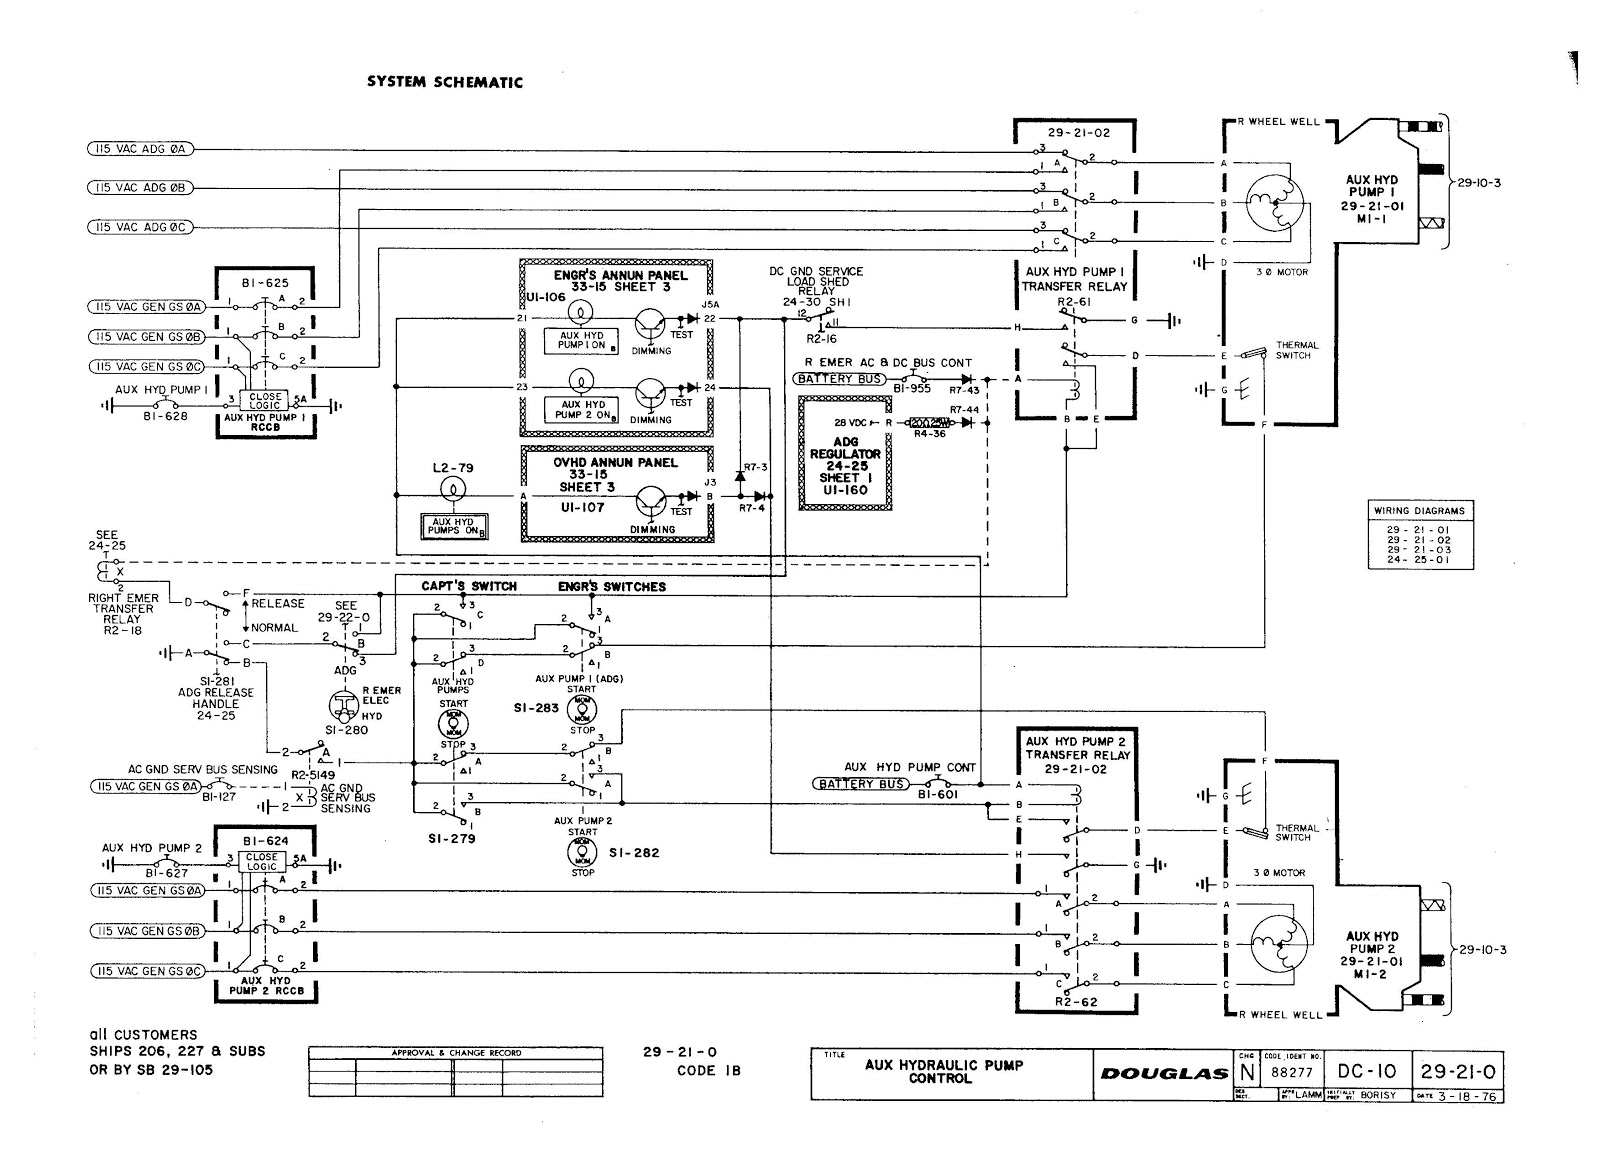 Helicopter Wiring Diagram Another Blog About Part 66 Virtual School Aircraft And Schematic Diagrams Rh Part66school Blogspot Com